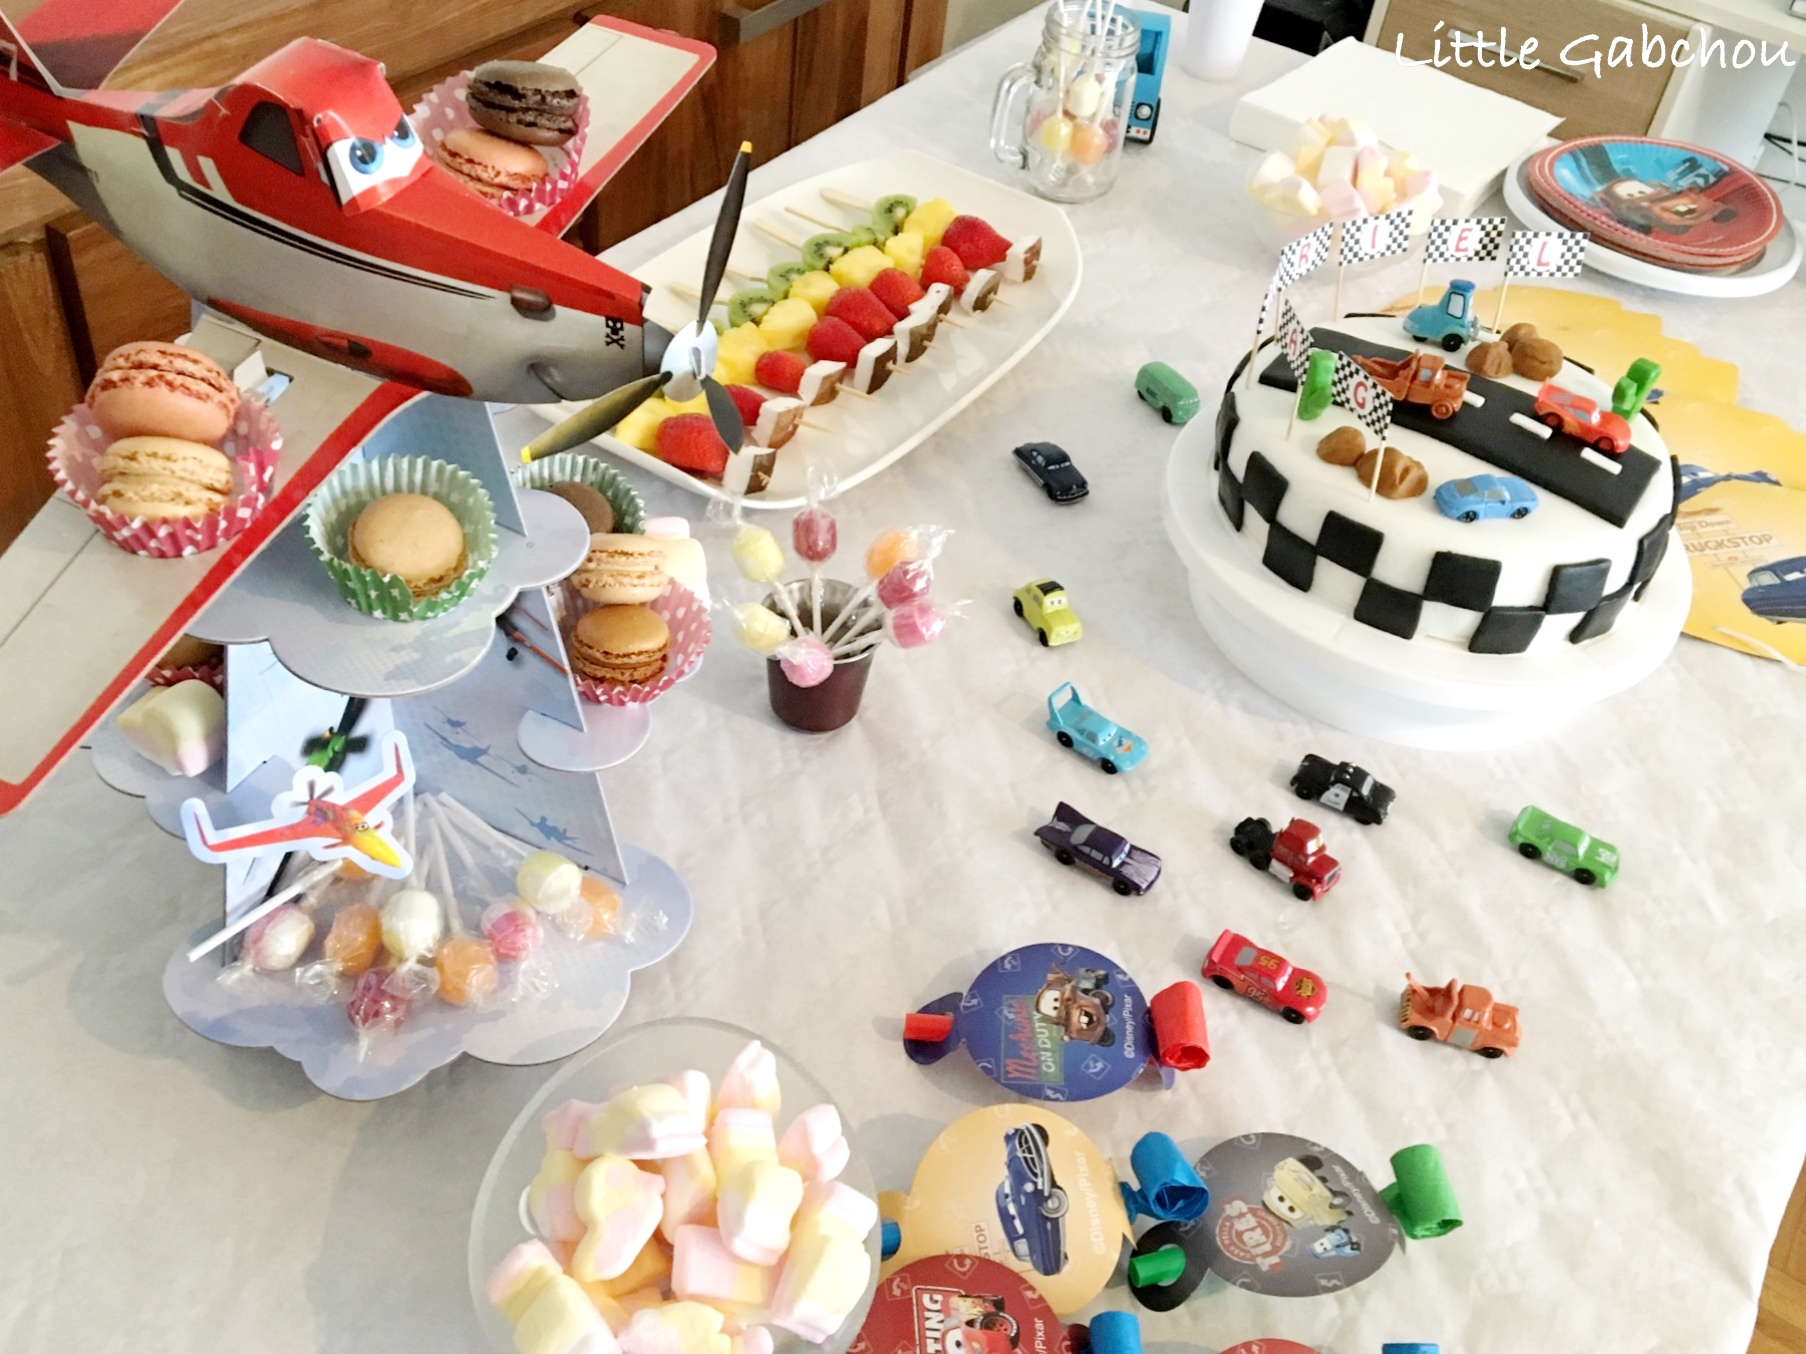 Cake design g teau d 39 anniversaire sur le th me de cars for Decoration maison automobile